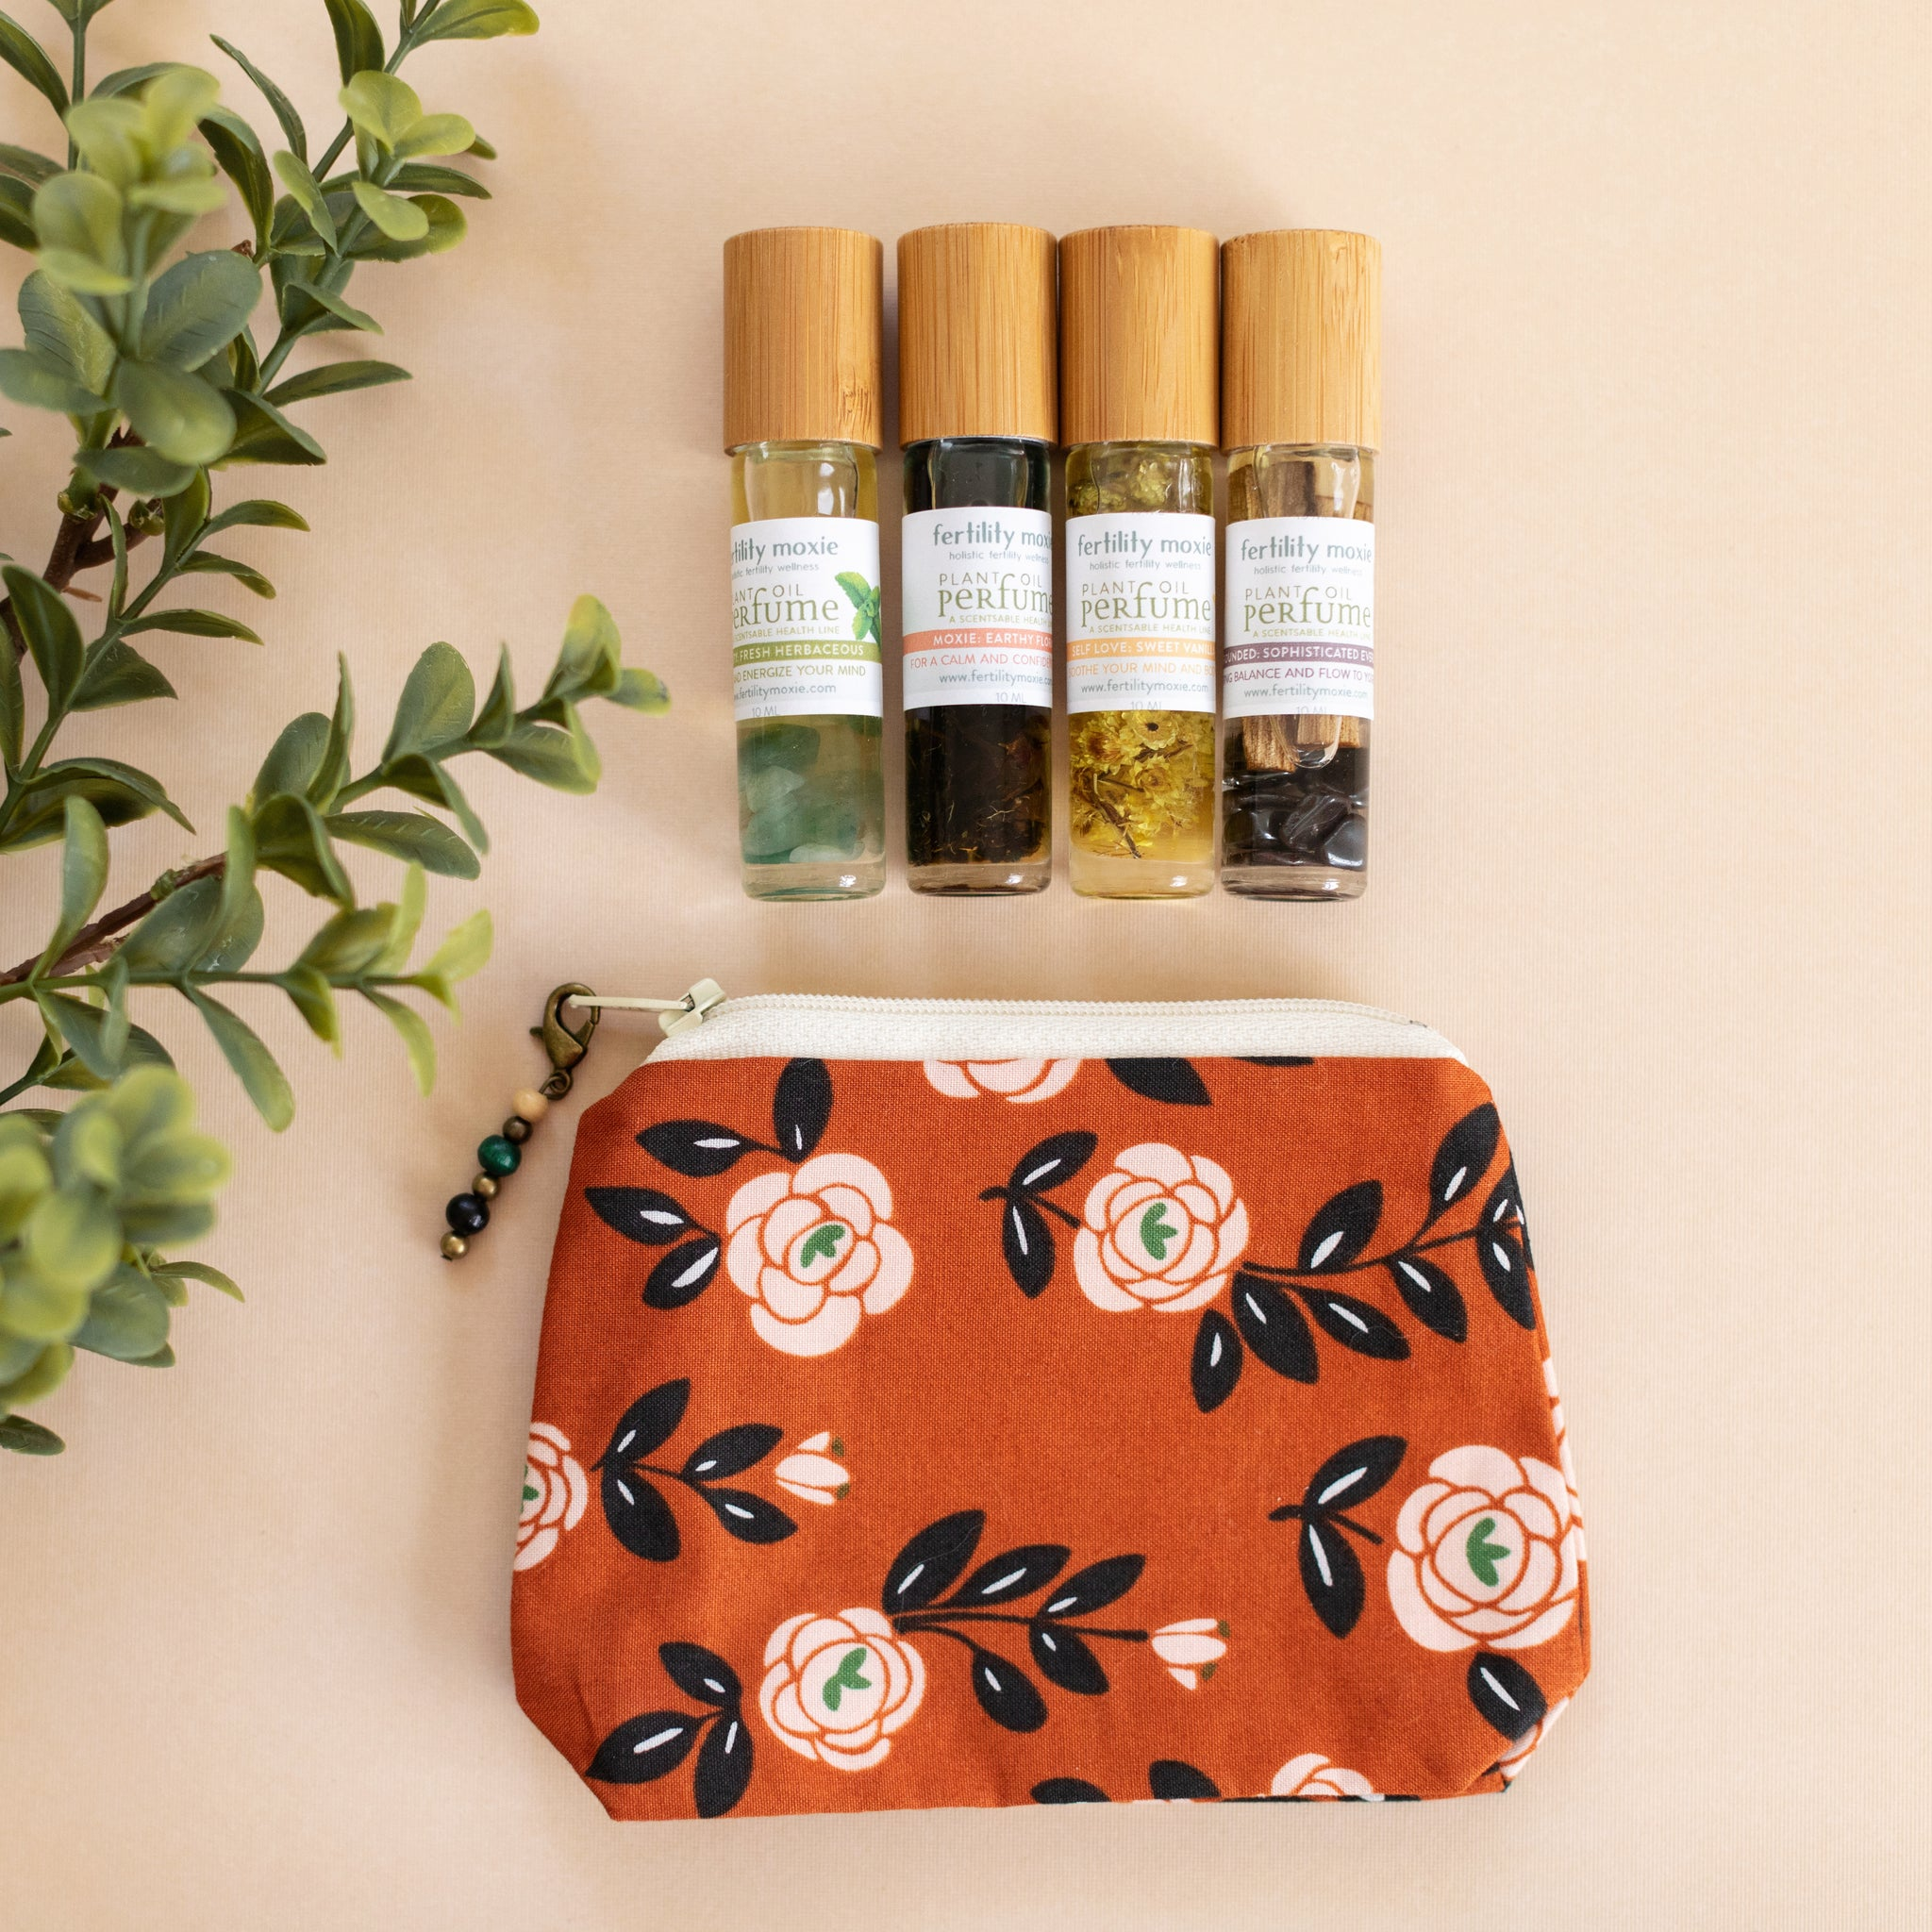 Rose Trellis Brick Bag with Fertility Moxie Plant Perfume Set-A Line from Scentsable Health